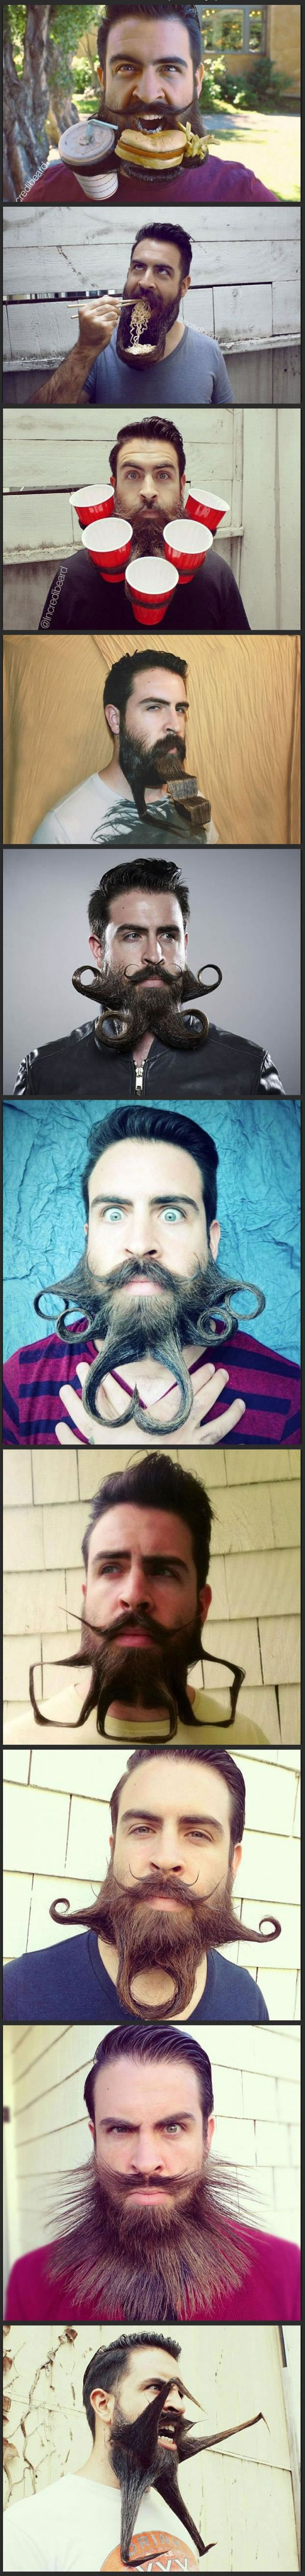 The best of beards. It took me awhile, but I realized it was the same guy